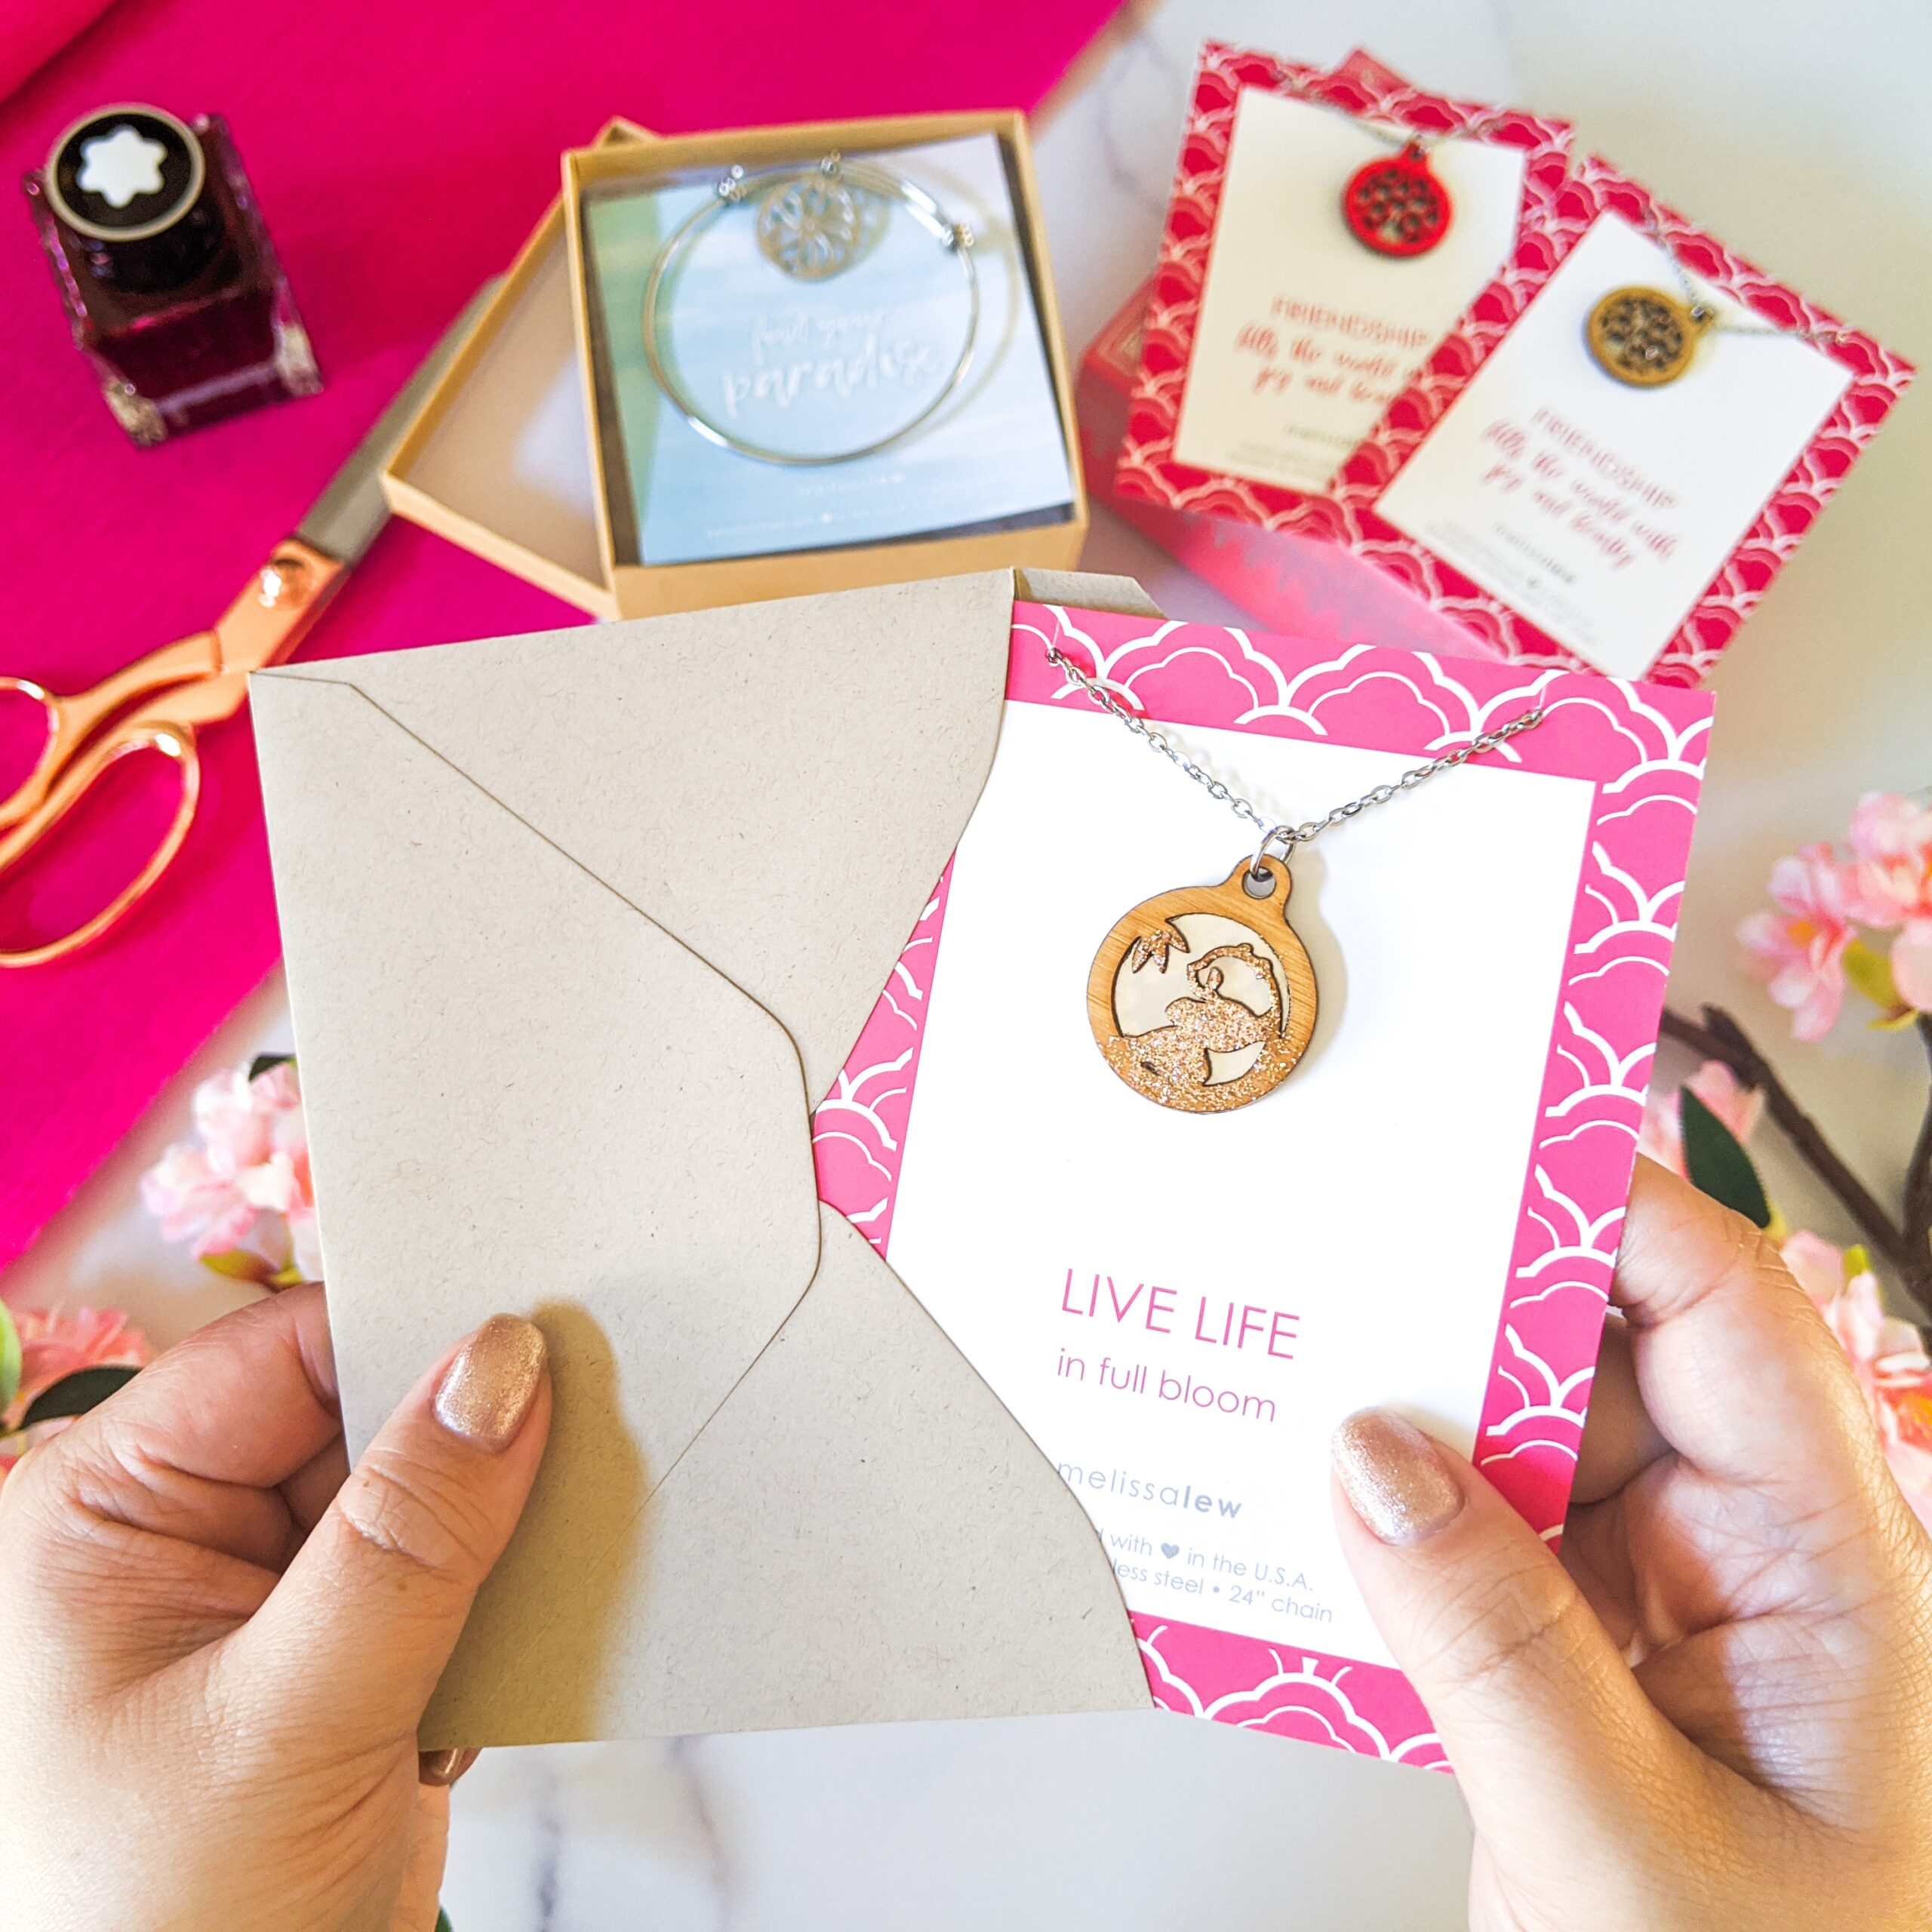 Photo of necklace and card being placed in envelope - gift ready gifts!